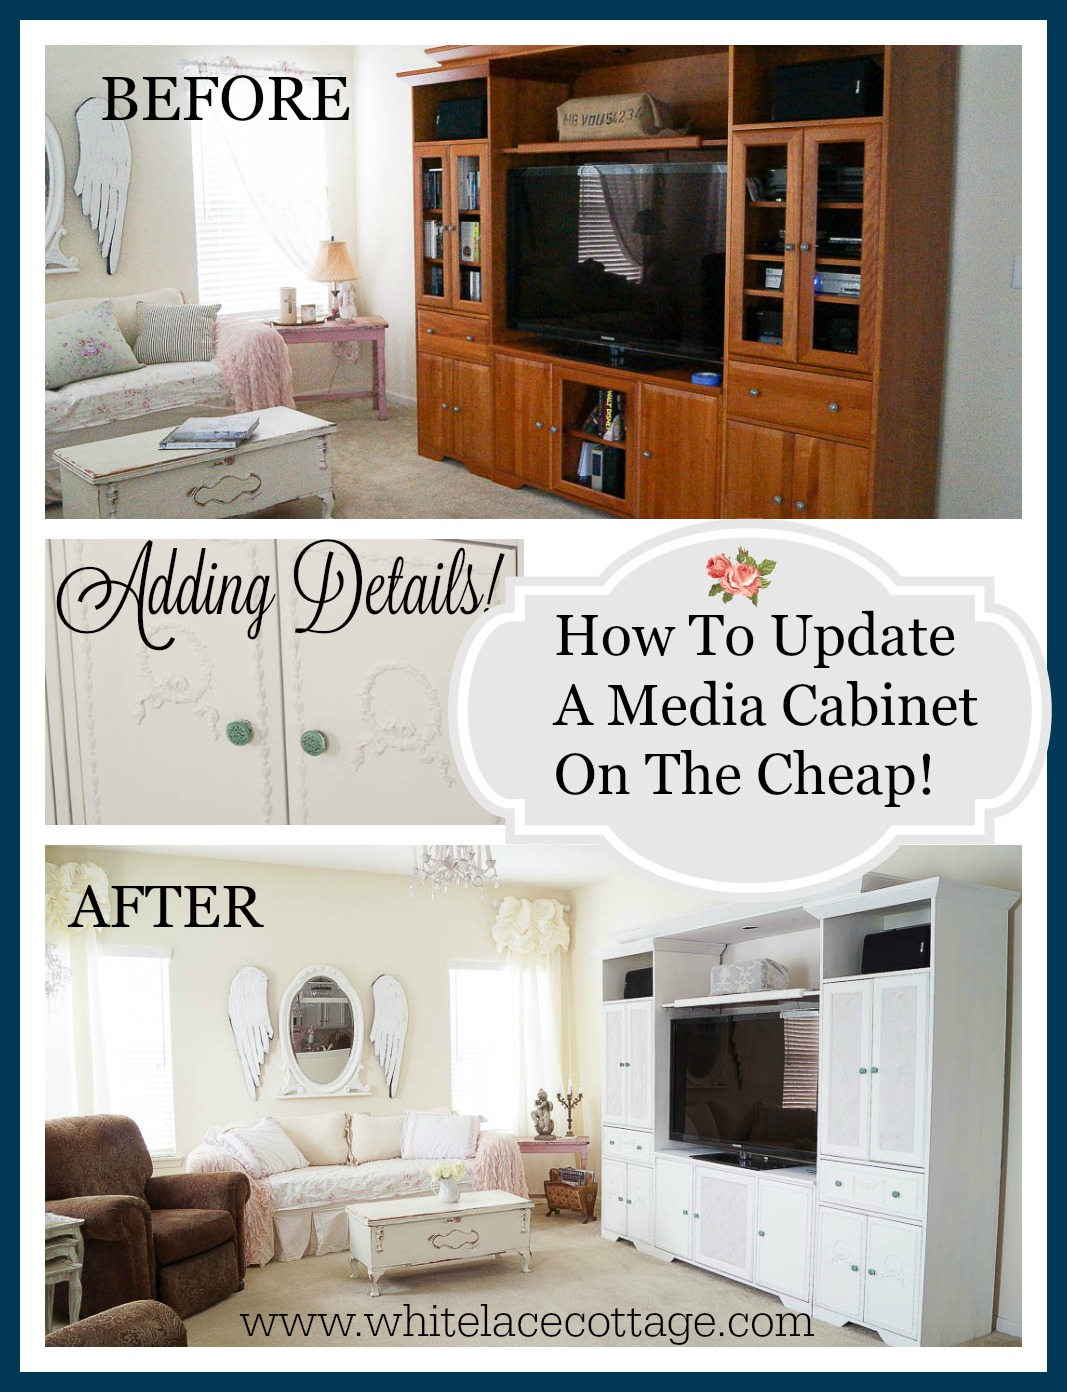 Media cabinet diy makeover white lace cottage for How to update cabinets